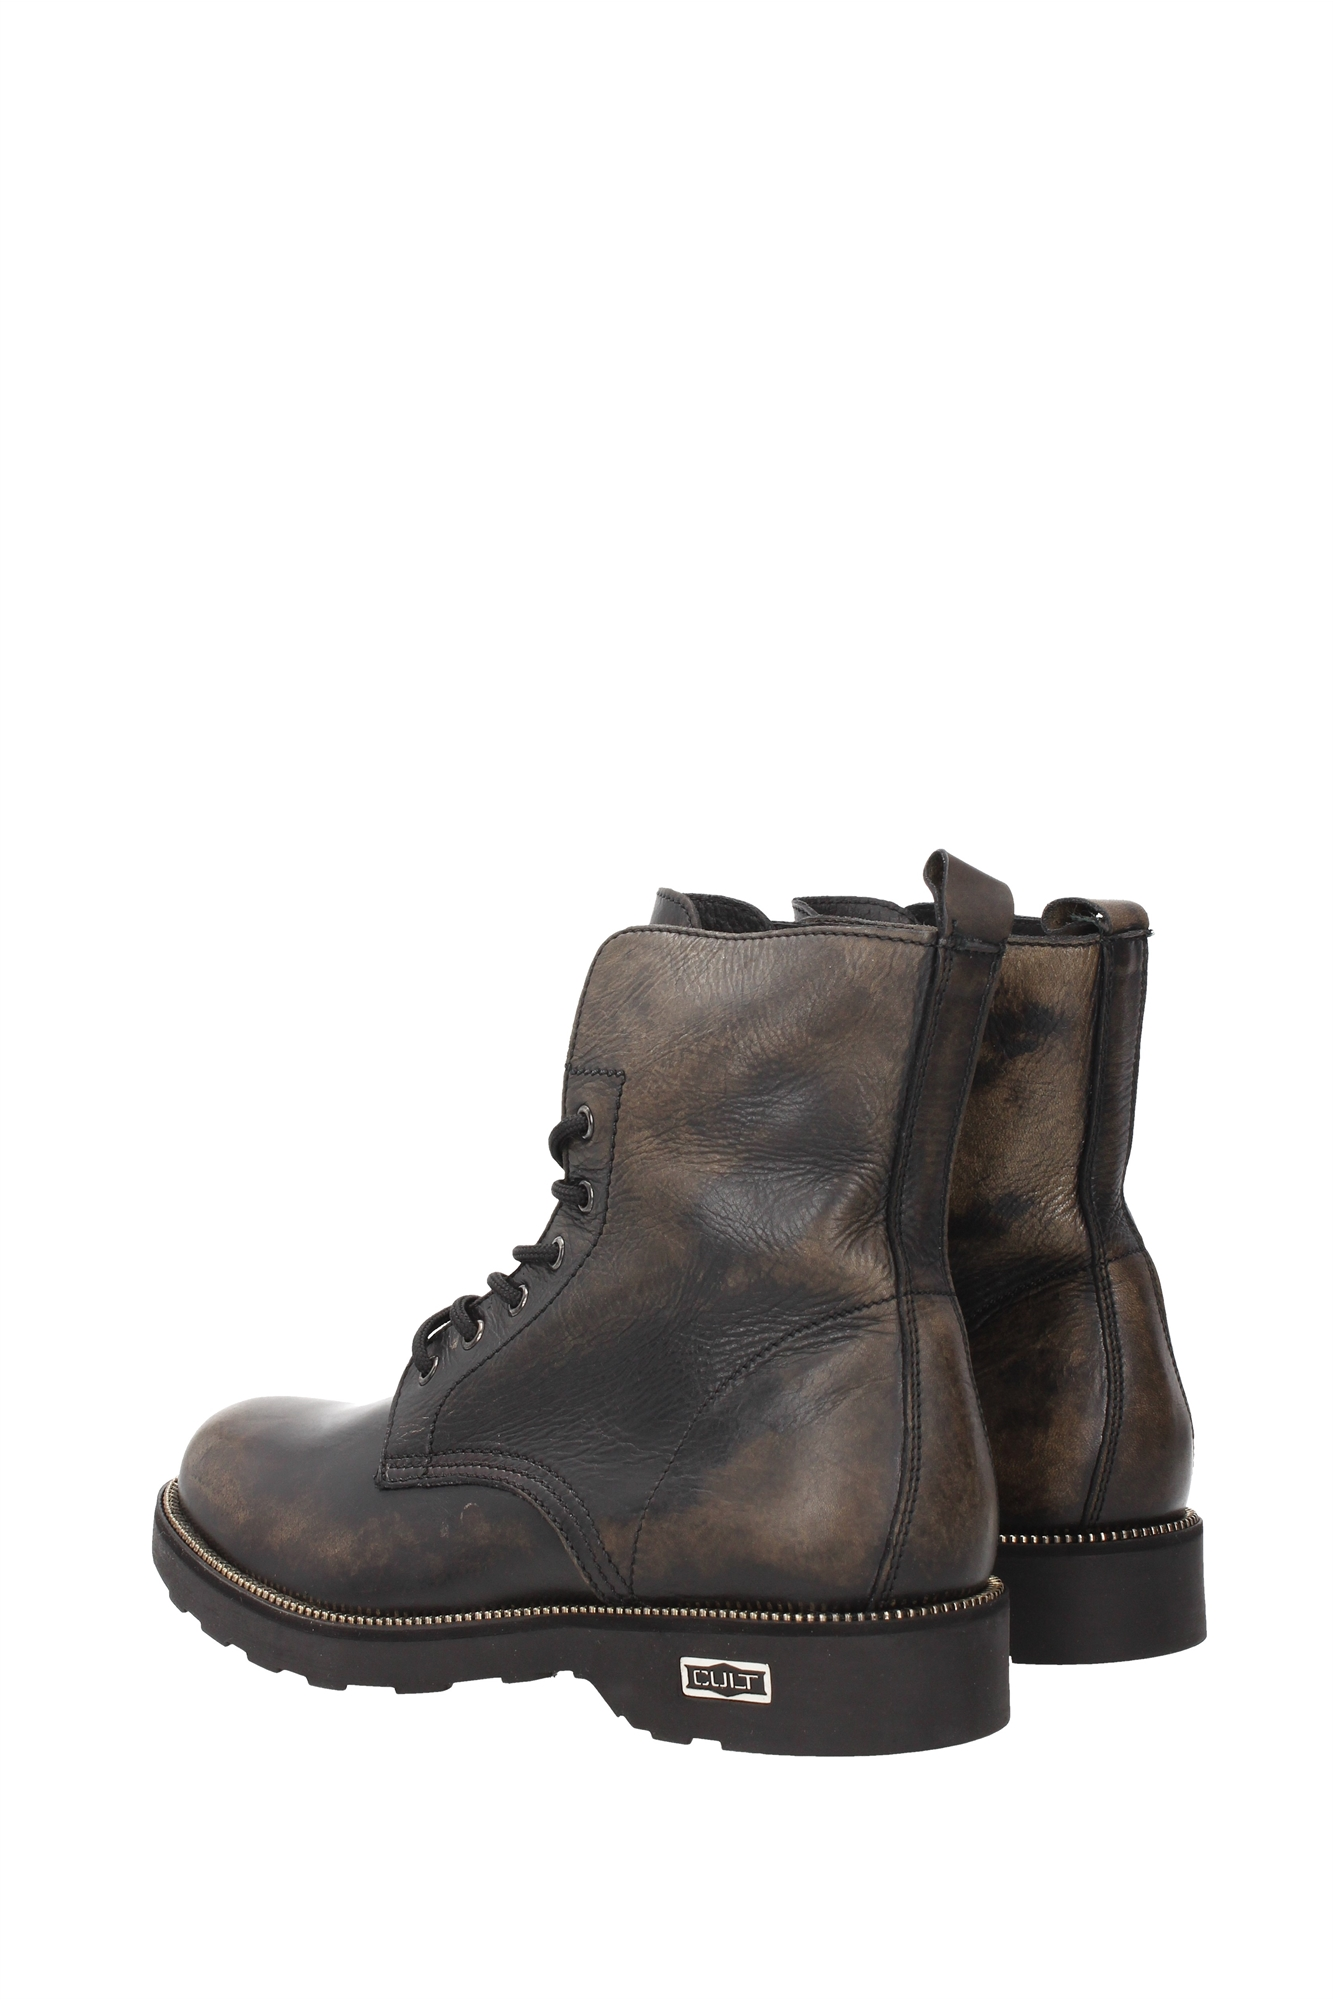 Ankle Boots Cult Men Leather Brown CLE102765 | eBay